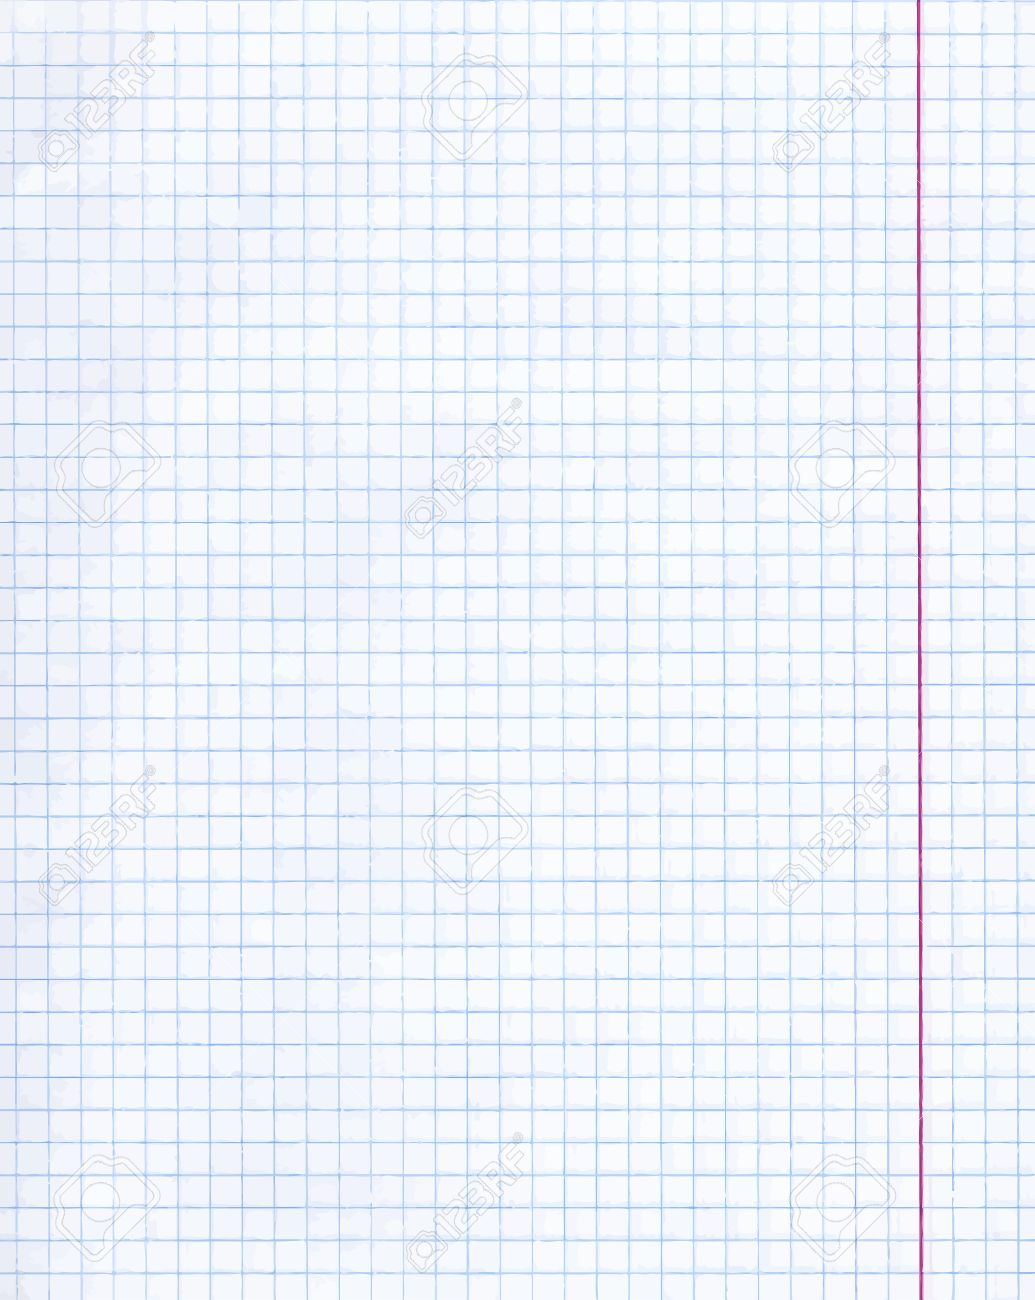 Blank Exercise Book Paper Sheet. Exercise Book Paper One Page In Square For  Math,